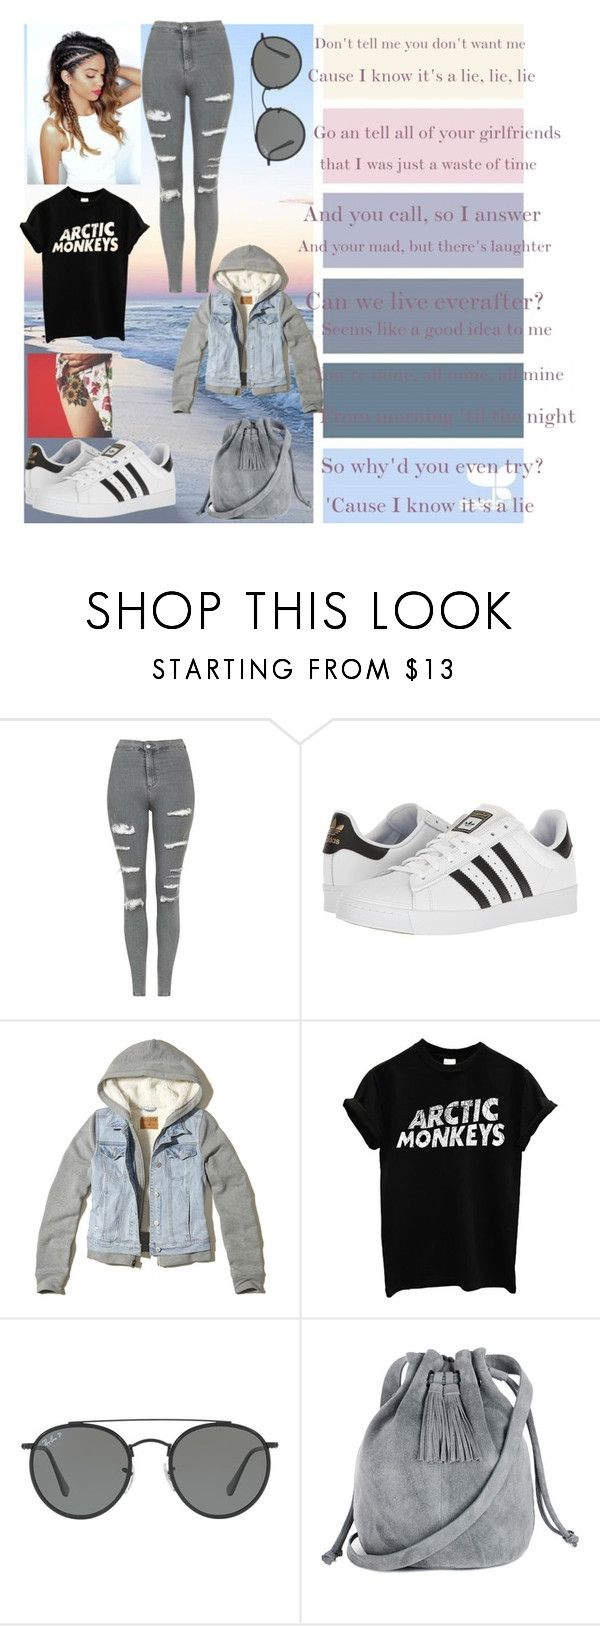 """It's A Lie-The Vamps"" by vintage-girl-18 ❤ liked on Polyvore featuring Topshop, adidas, Hollister Co., Ray-Ban and Warehouse"